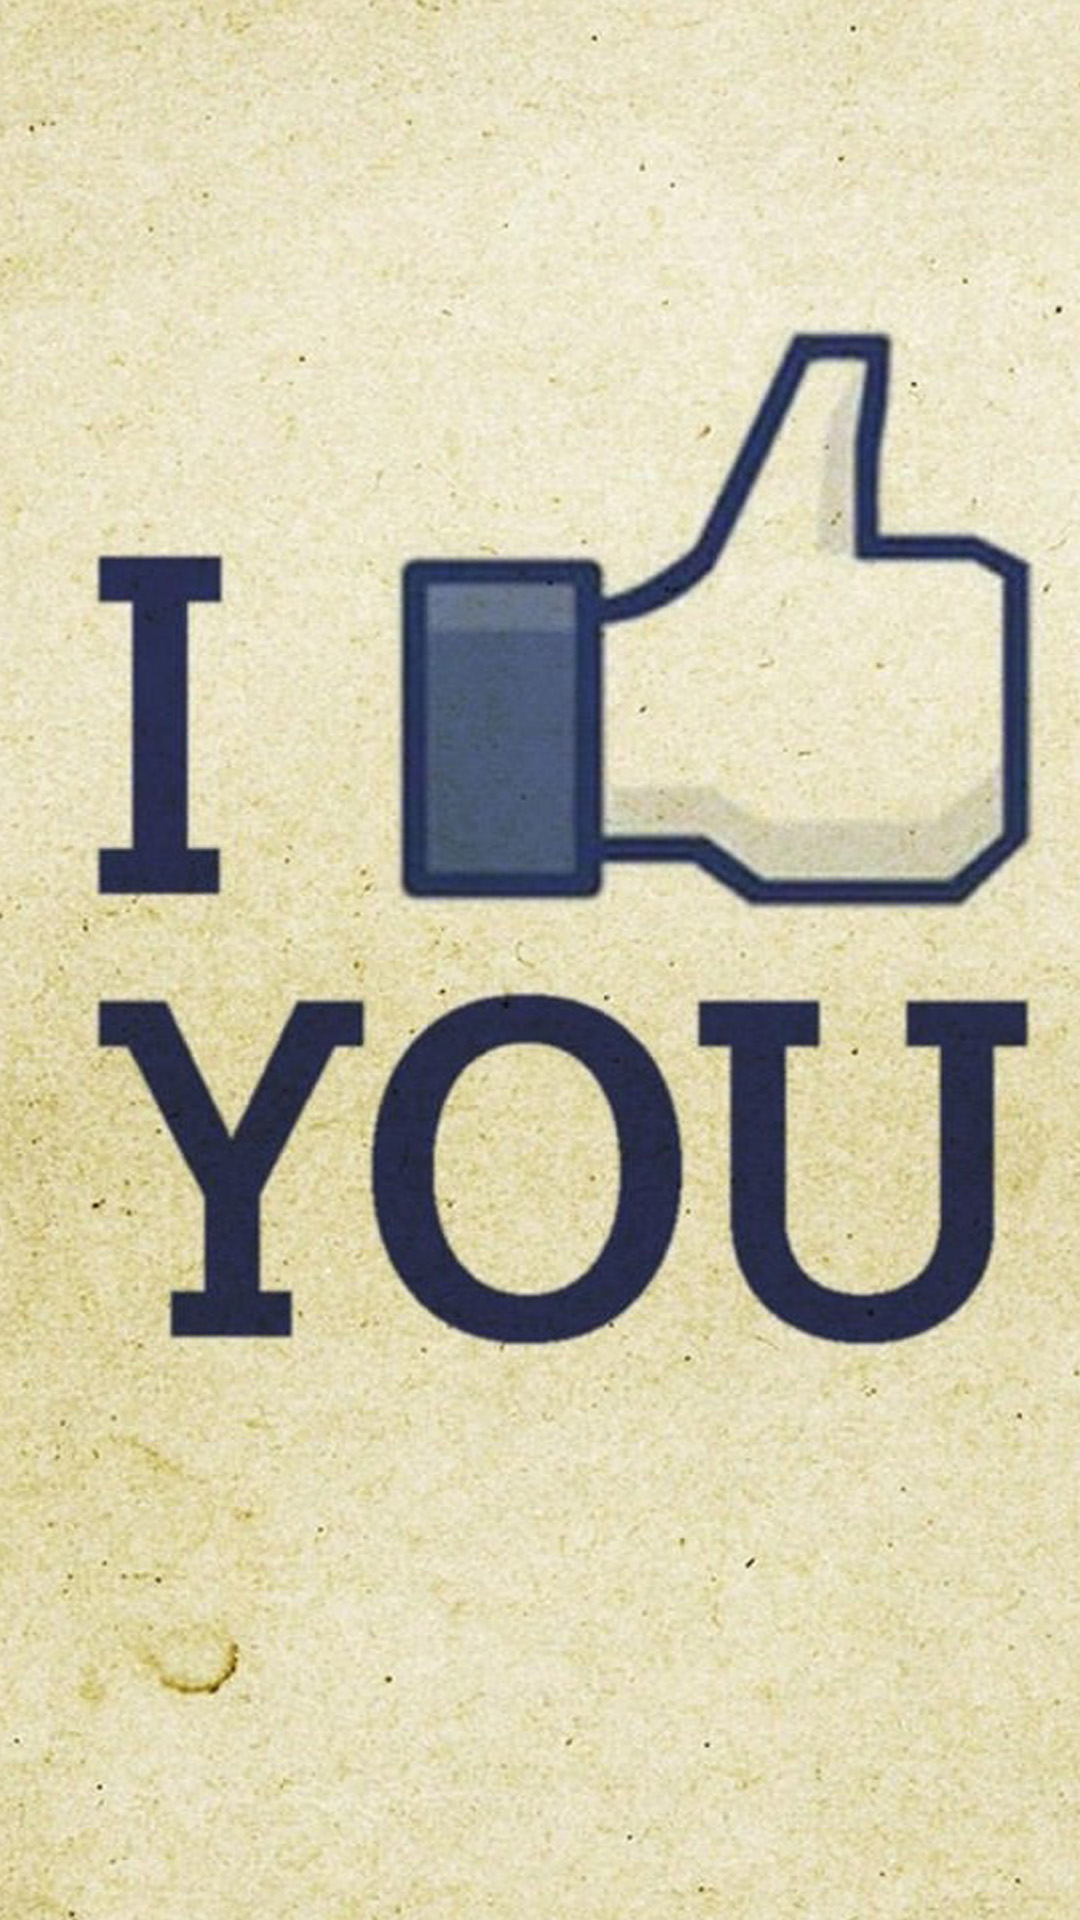 I Like You Android Wallpaper Android Hd Wallpapers